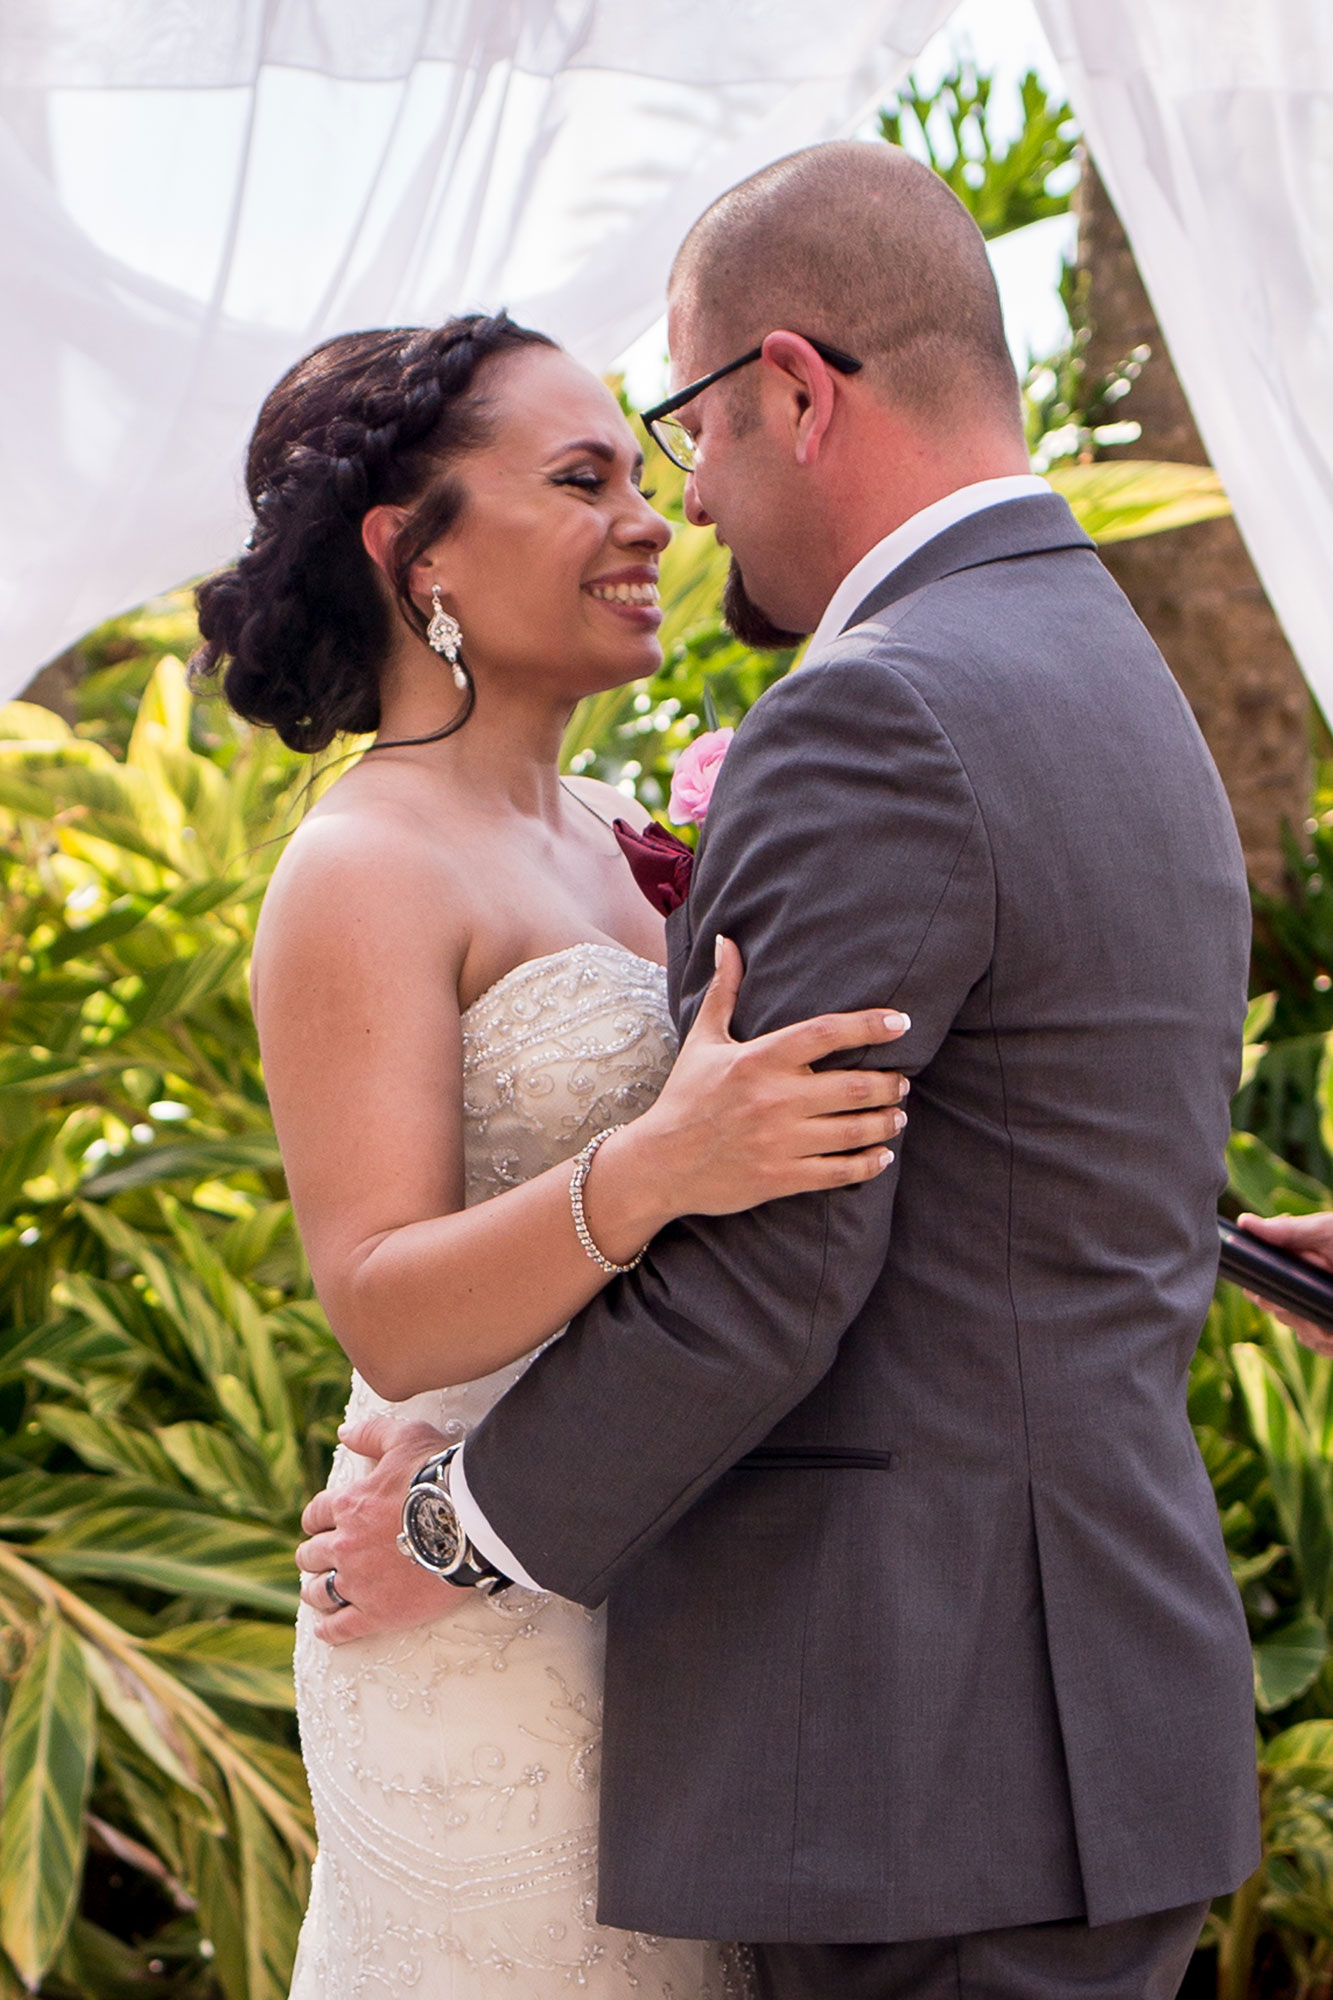 newlywed couple embracing after their wedding ceremony los angeles california crystal lily photography